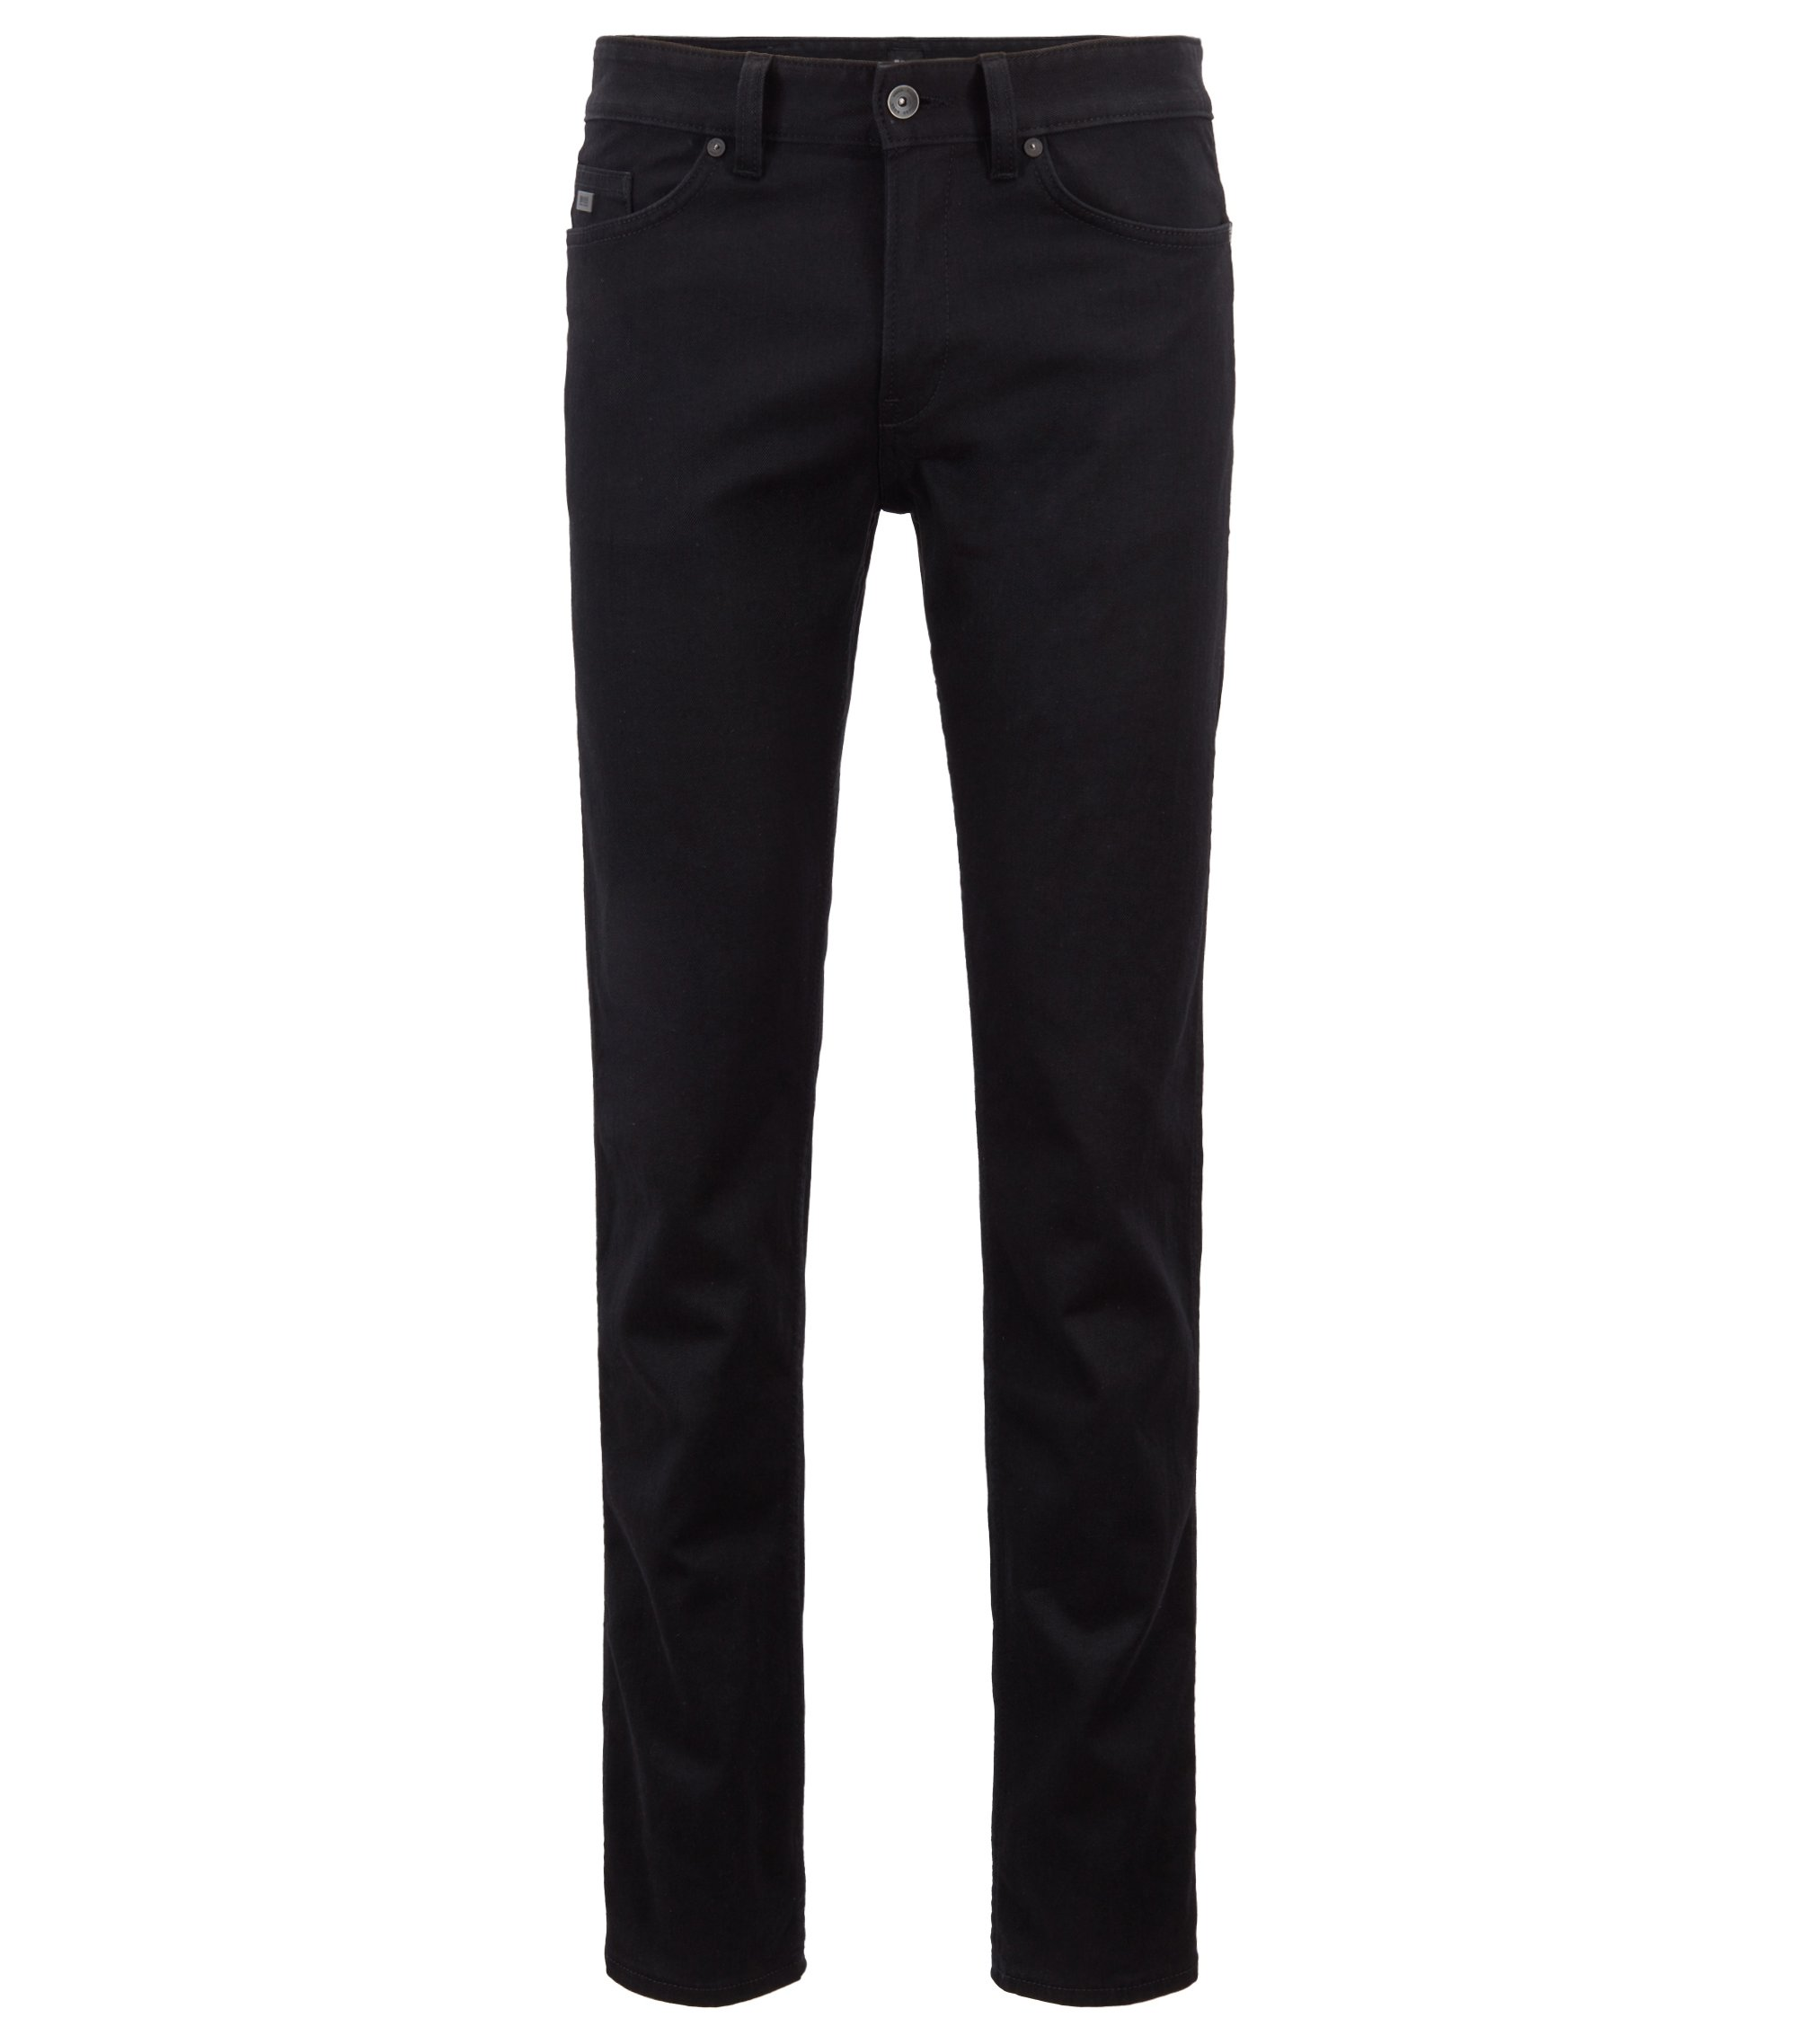 Stretch Cotton Jean, Slim Fit | Delaware, Black